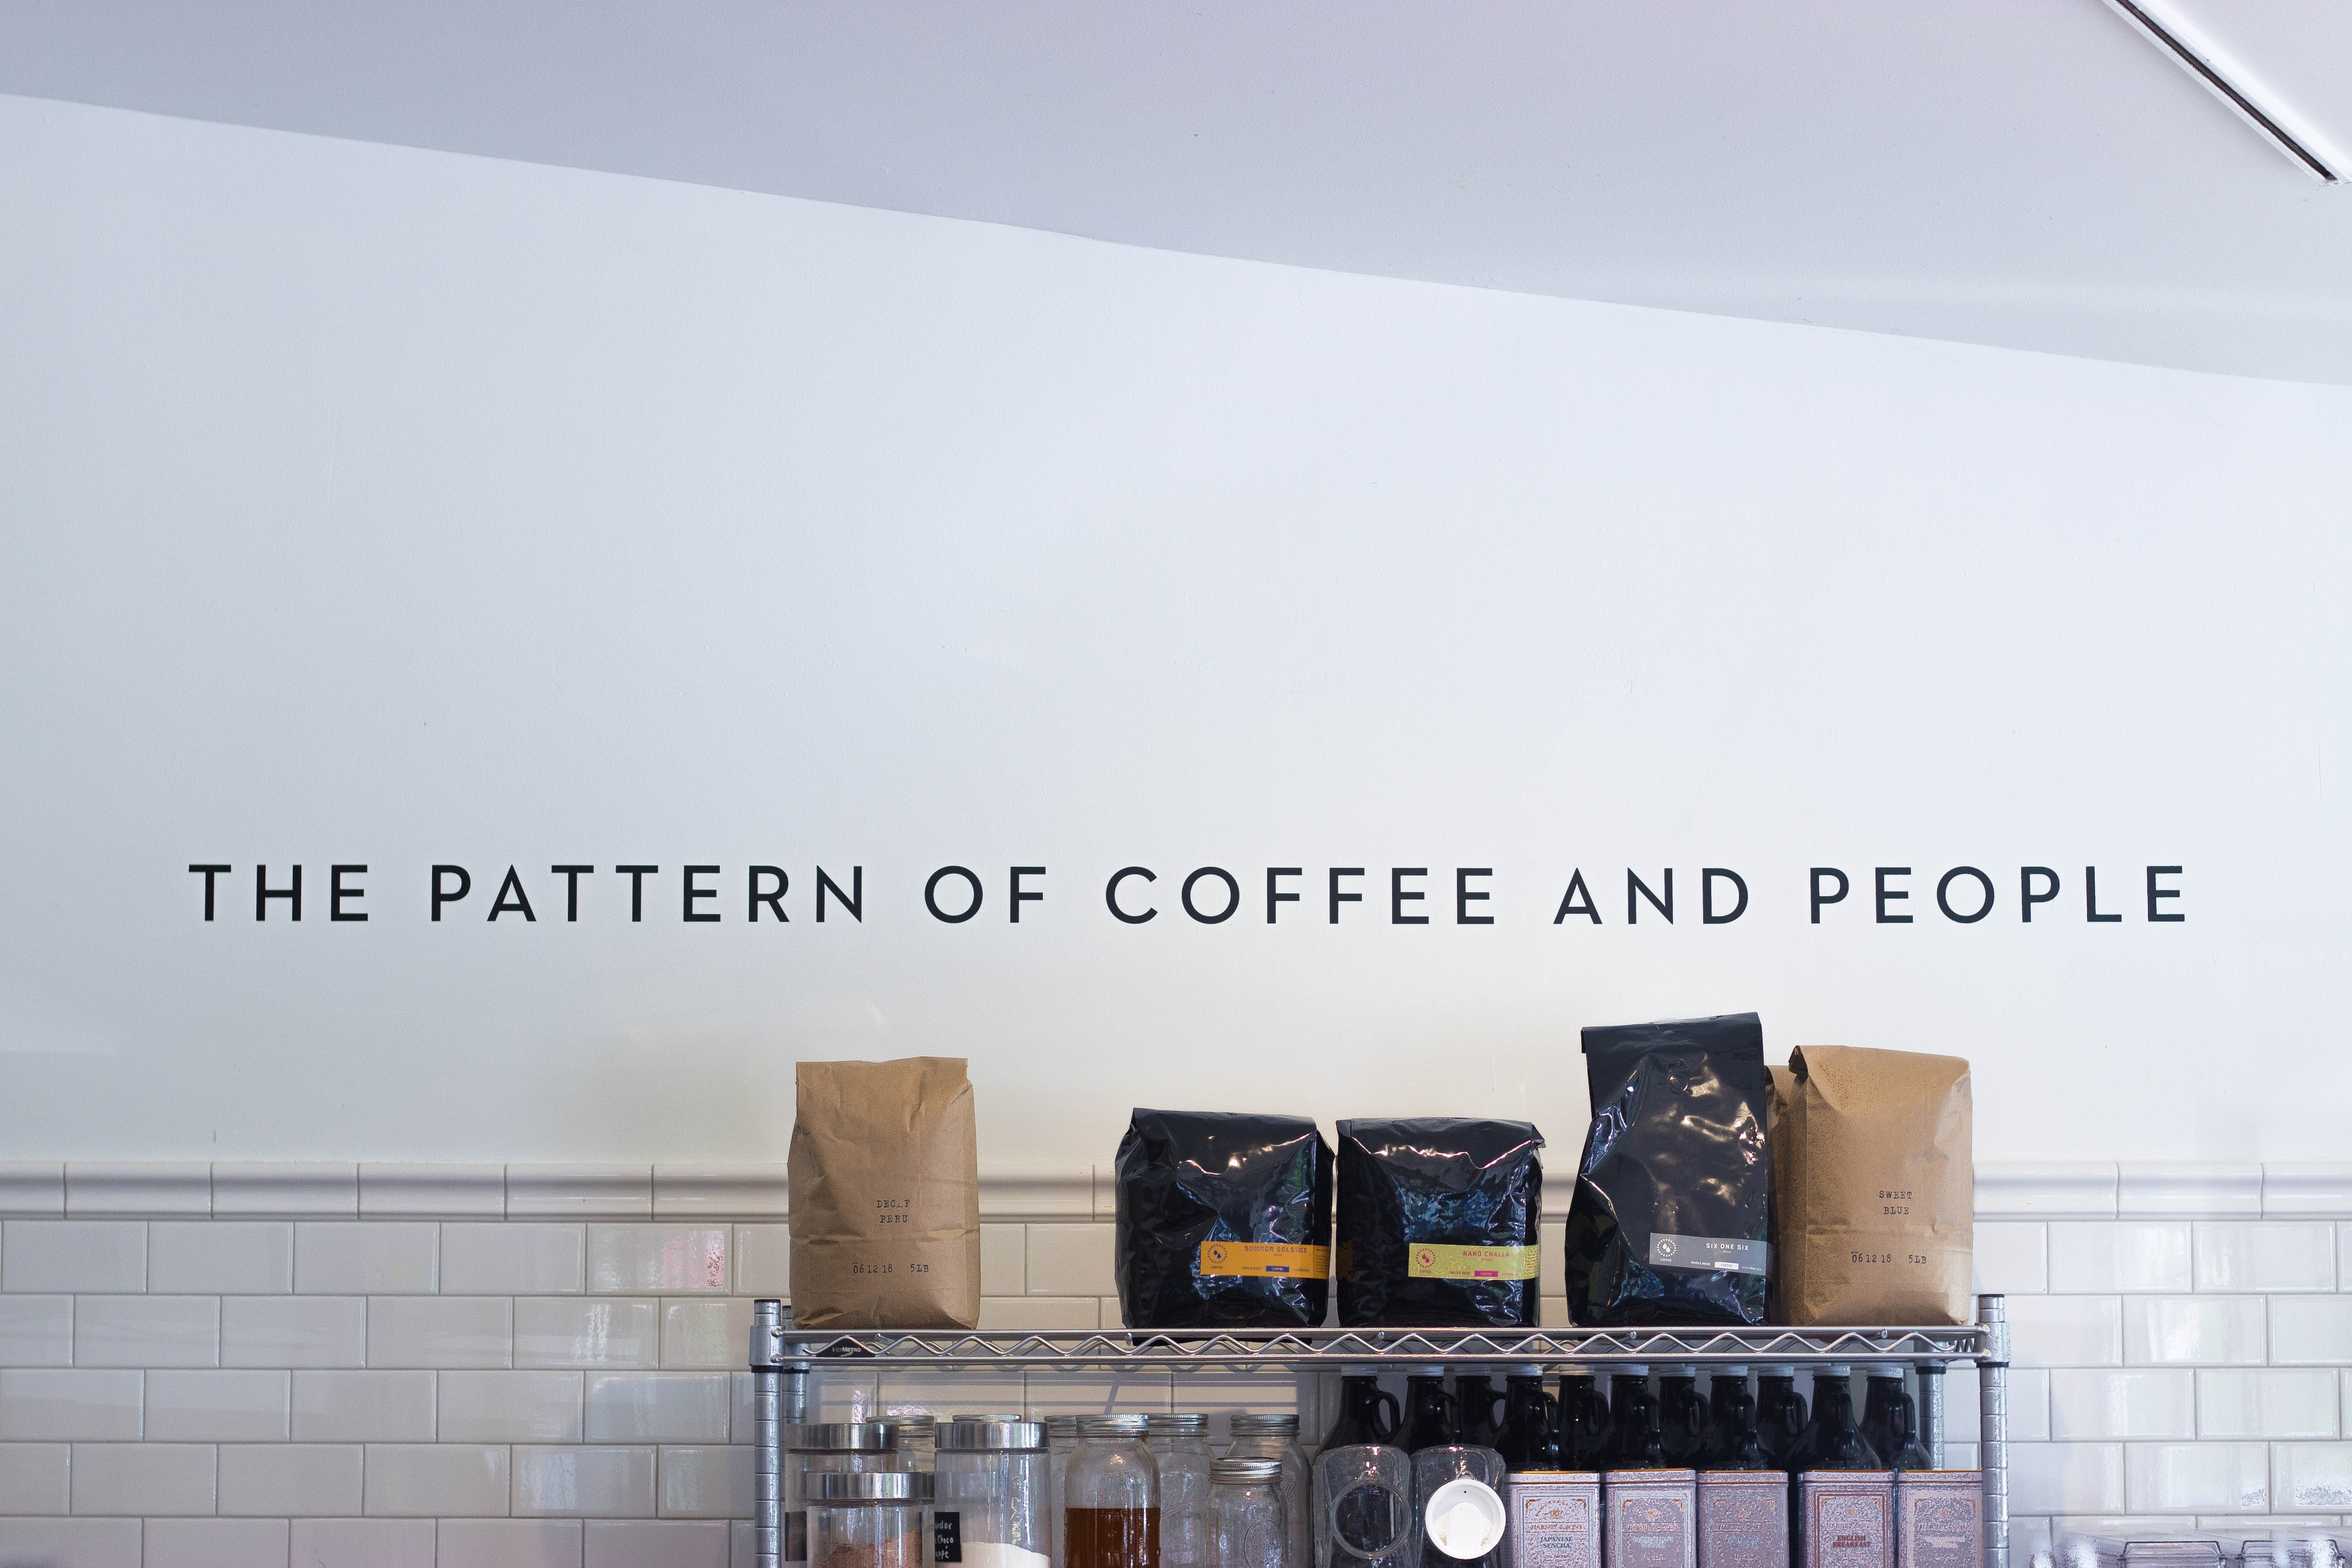 five assorted-brand coffee bags on stainless steel rack